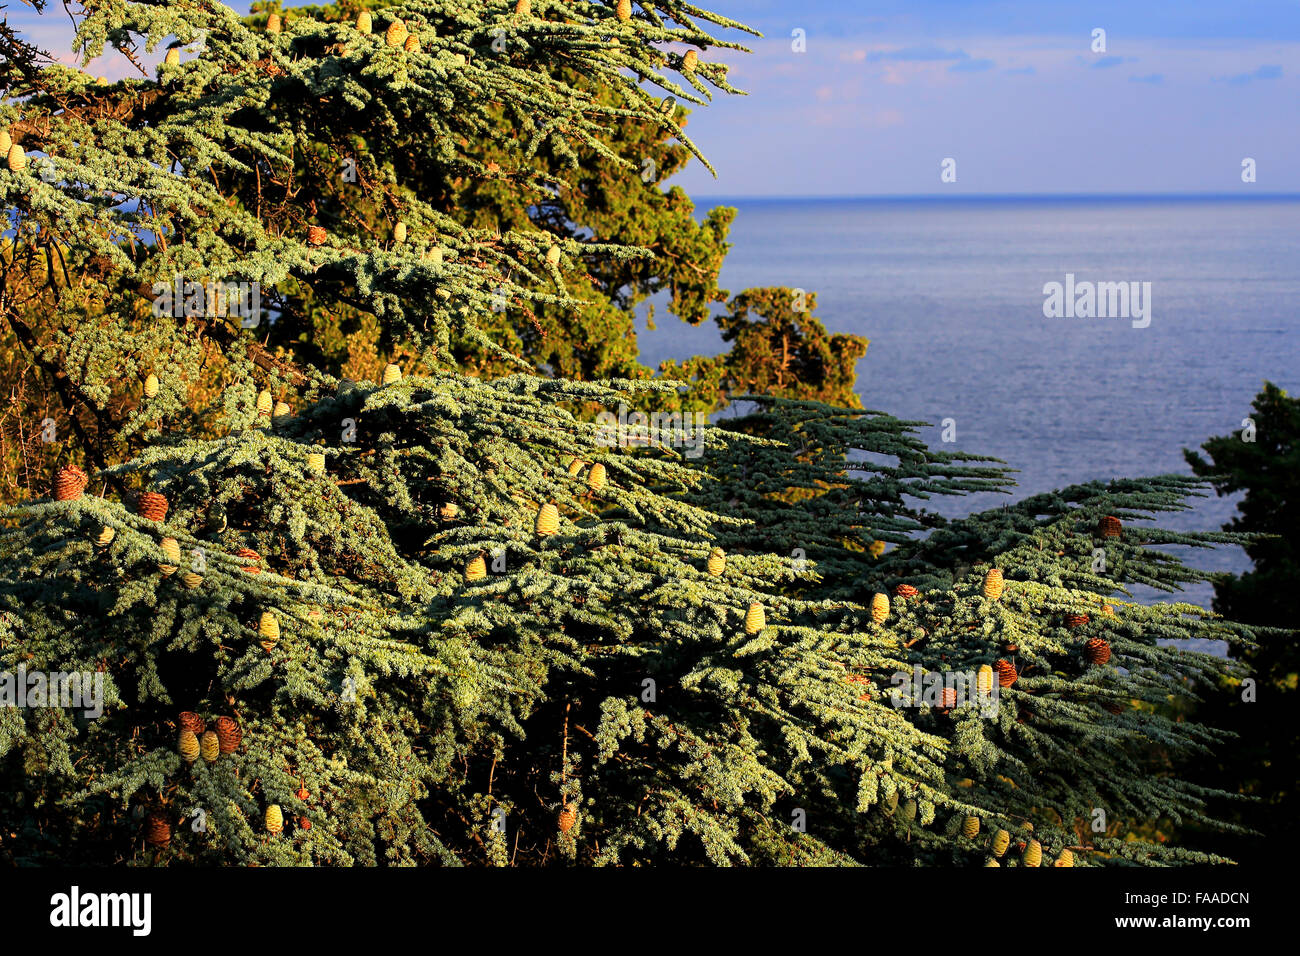 Branch of a coniferous tree (deodar) with pine cones illuminated by the evening light - Stock Image